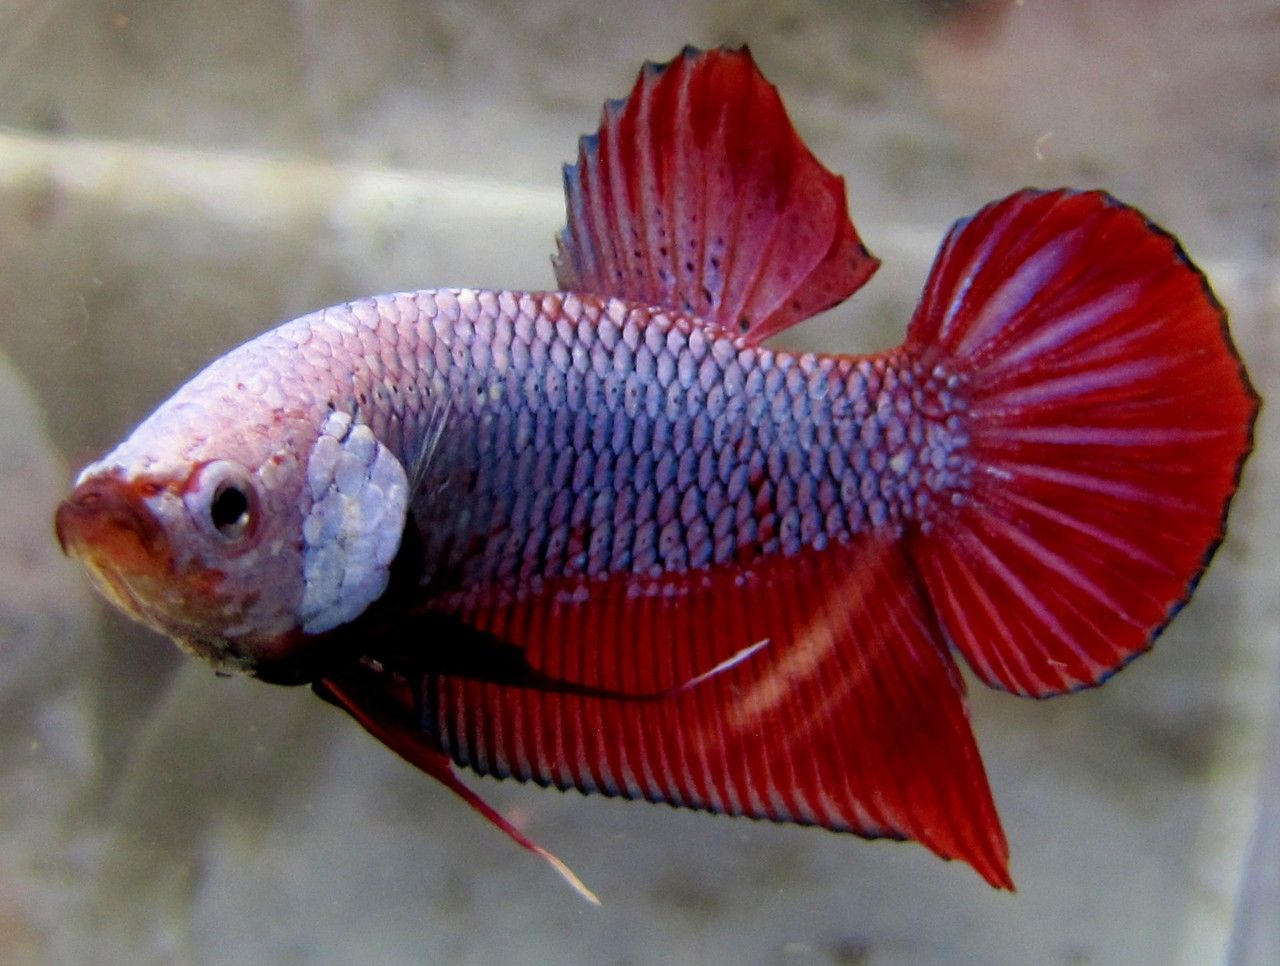 Betta Fish Ick | Top 35 Beautiful Types Of Betta Fish With Amazing Pictures Betta